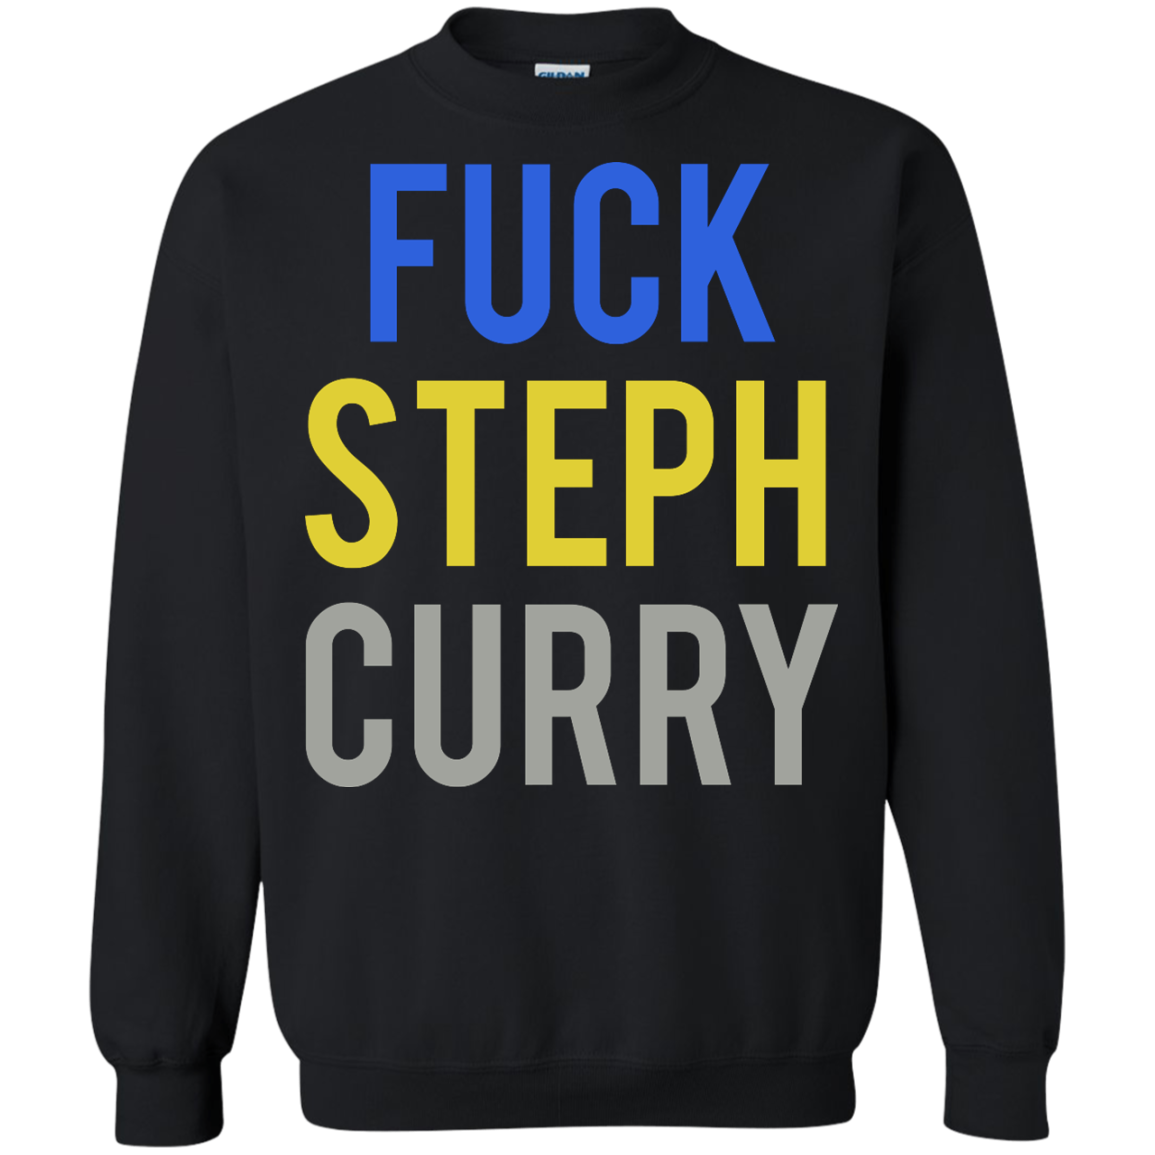 Fuck Steph Curry Shirt, Tank, Sweater